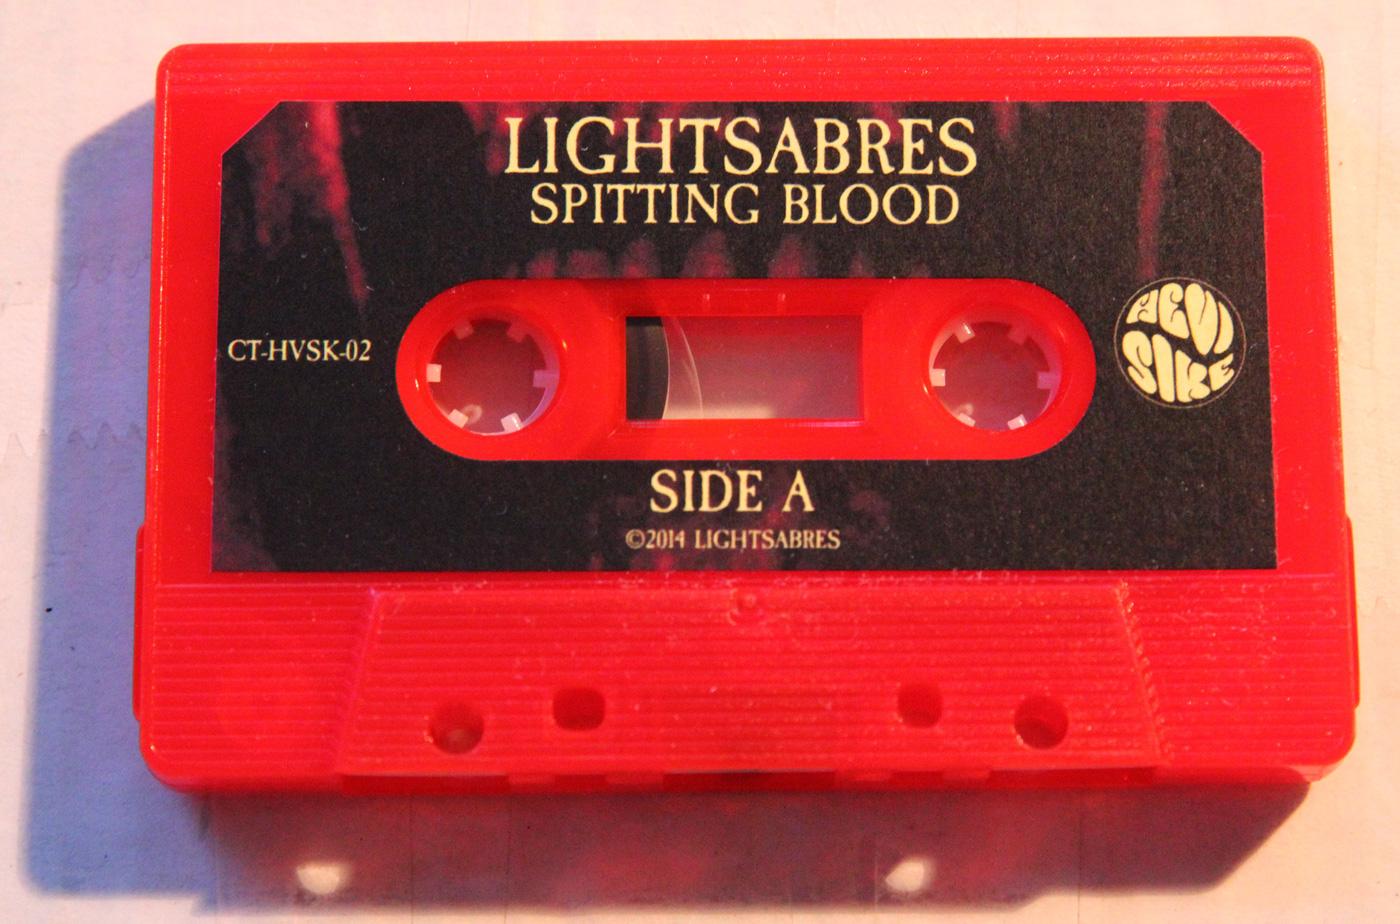 lightsabres-spitting-blood-side-1